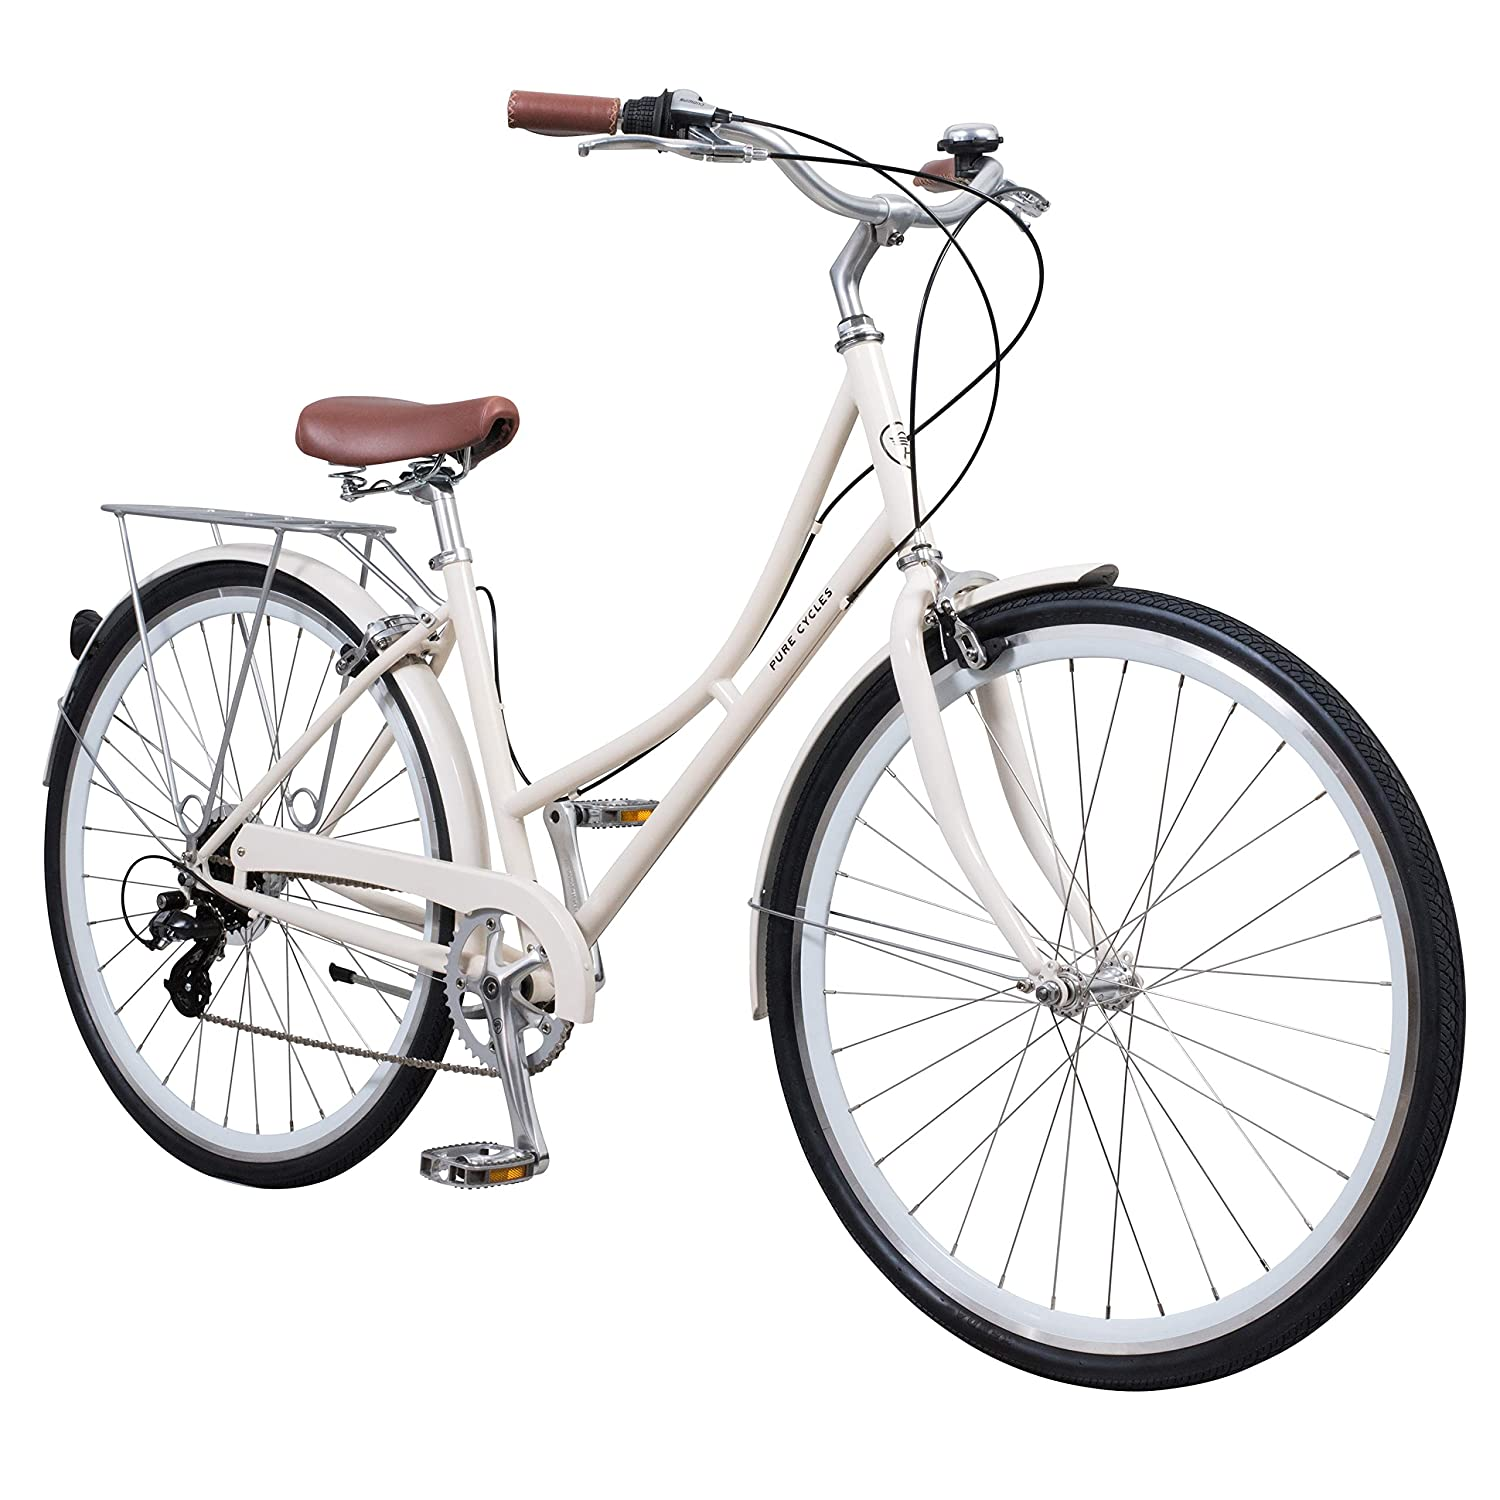 White Dutch Style 3-Speed Bicycle